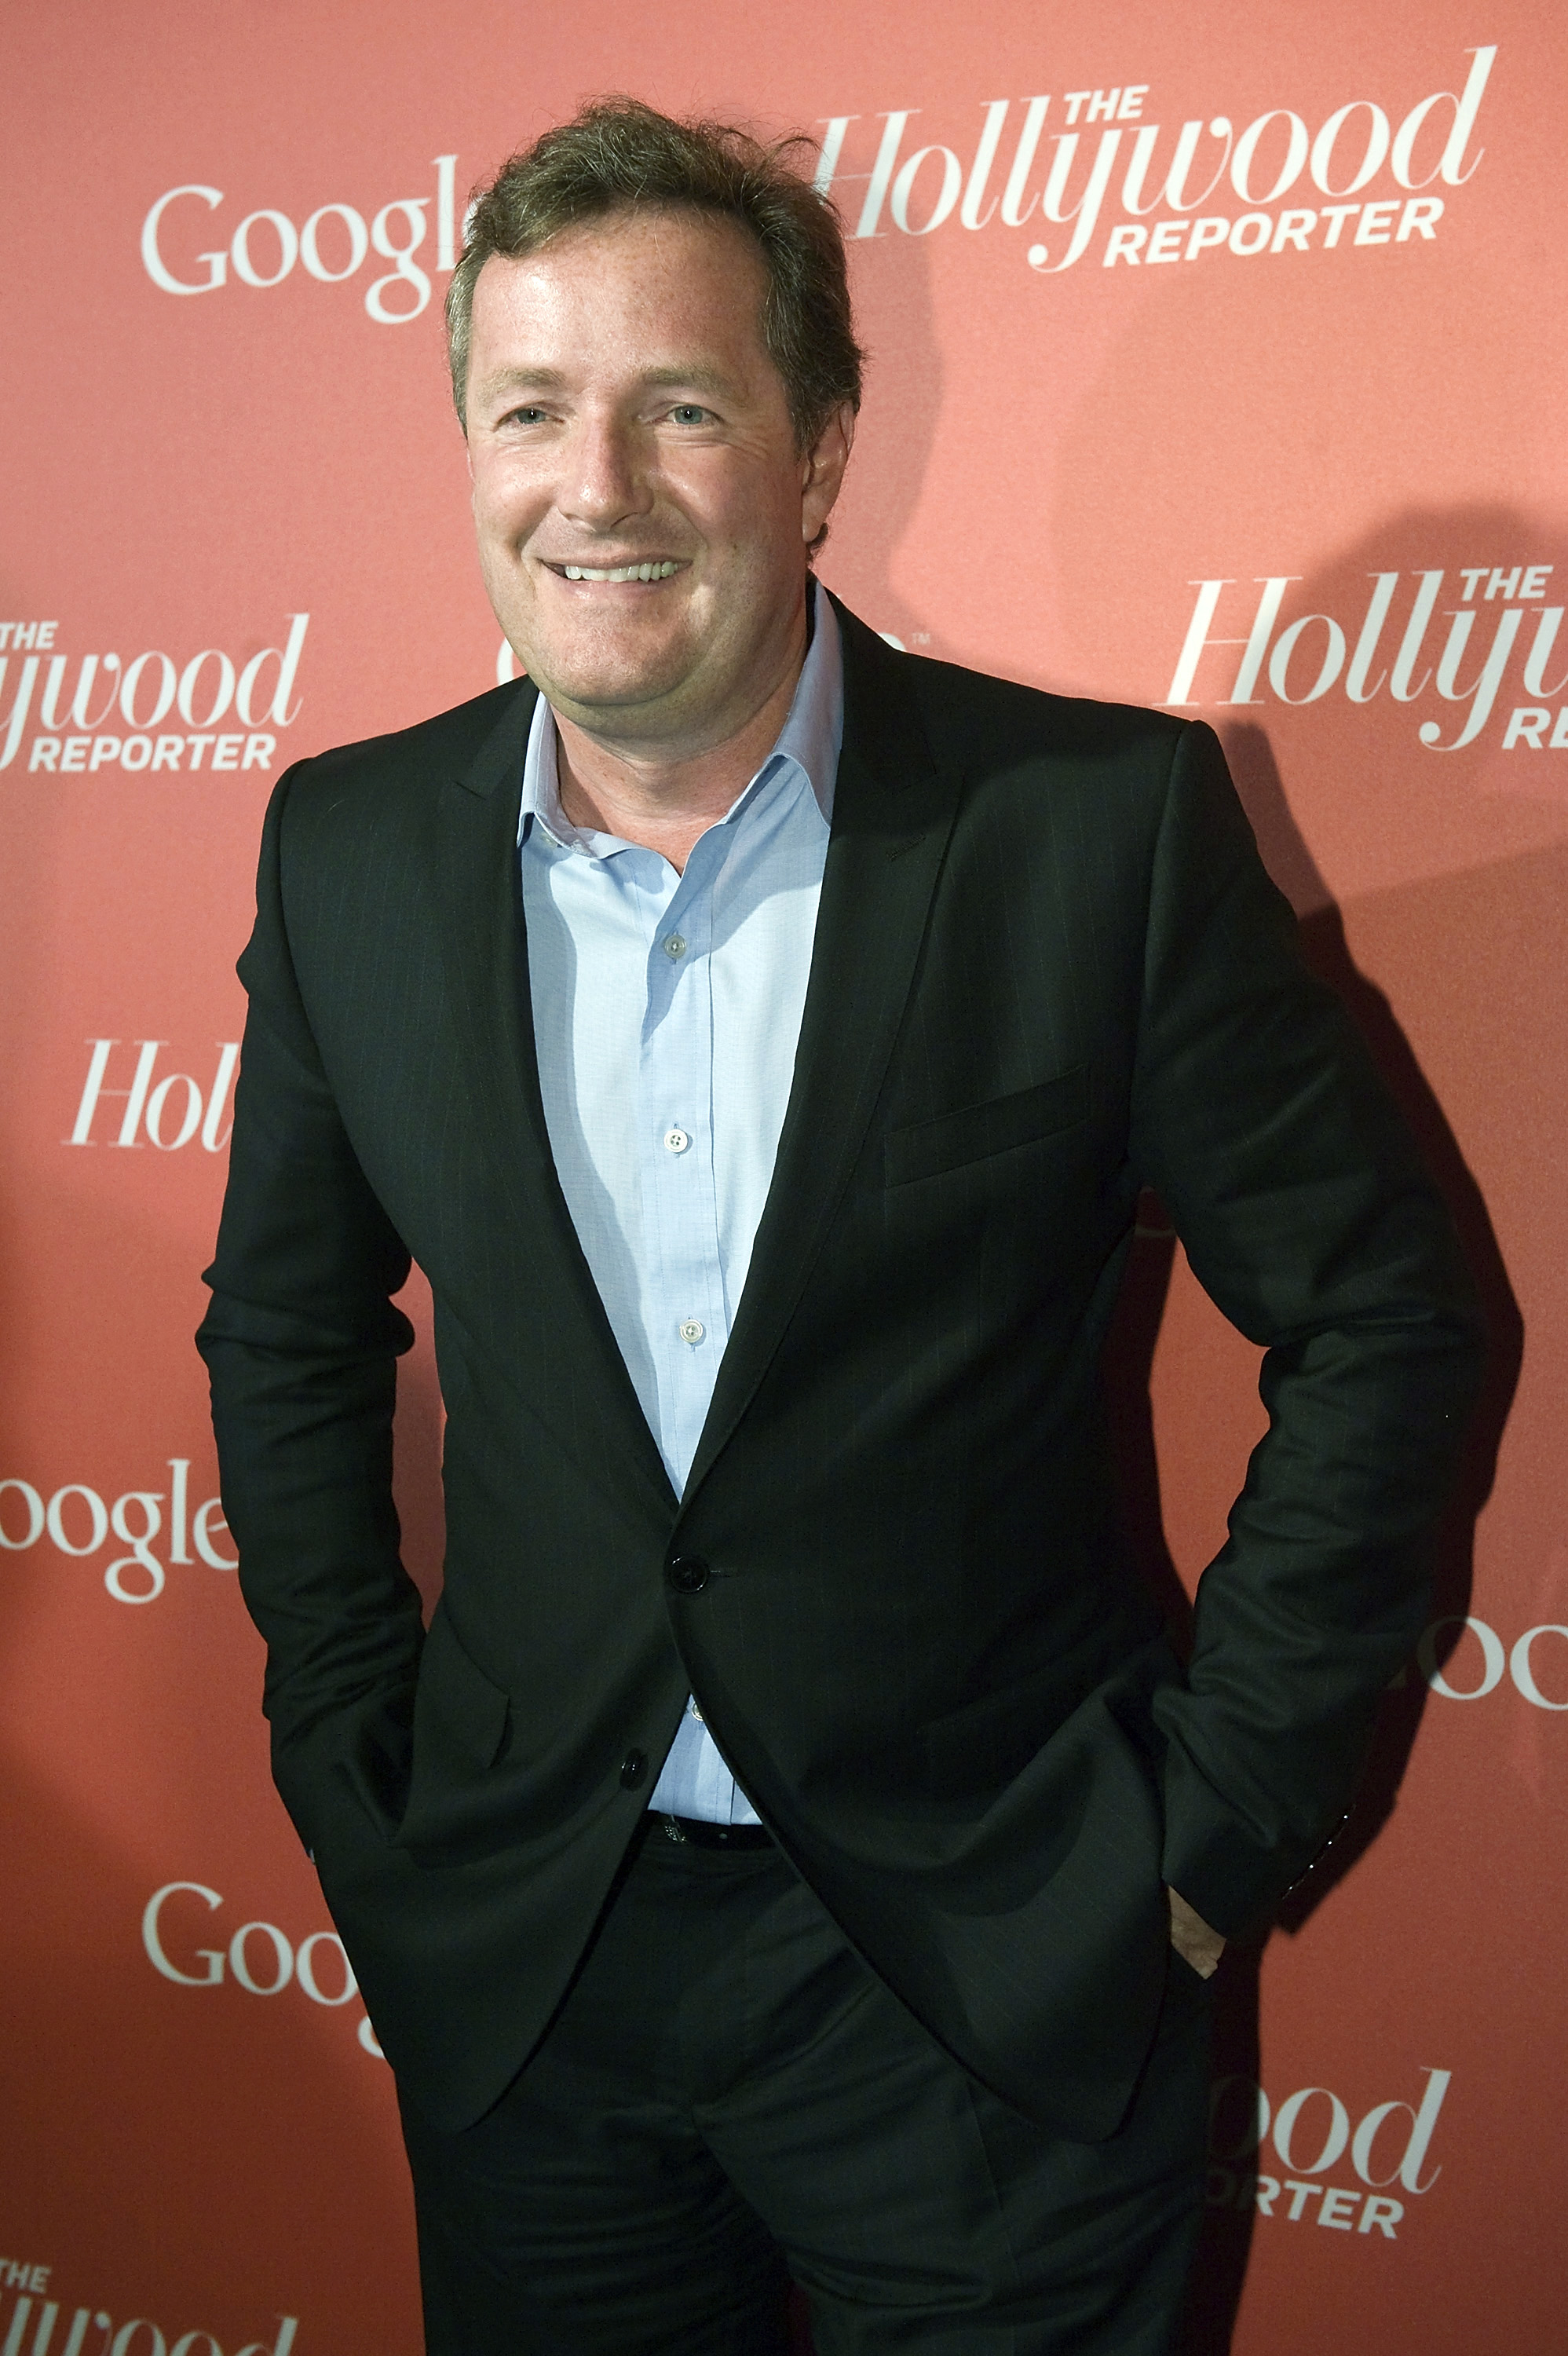 Piers Morgan of CNN arrives for a party thrown by Google and the Hollywood Reporter, on the eve of the annual White House Correspondents' Association Dinner, at the W Hotel in Washington, April 27, 2012.  REUTERS/Jonathan Ernst  (UNITED STATES - Tags: ENTERTAINMENT MEDIA POLITICS)